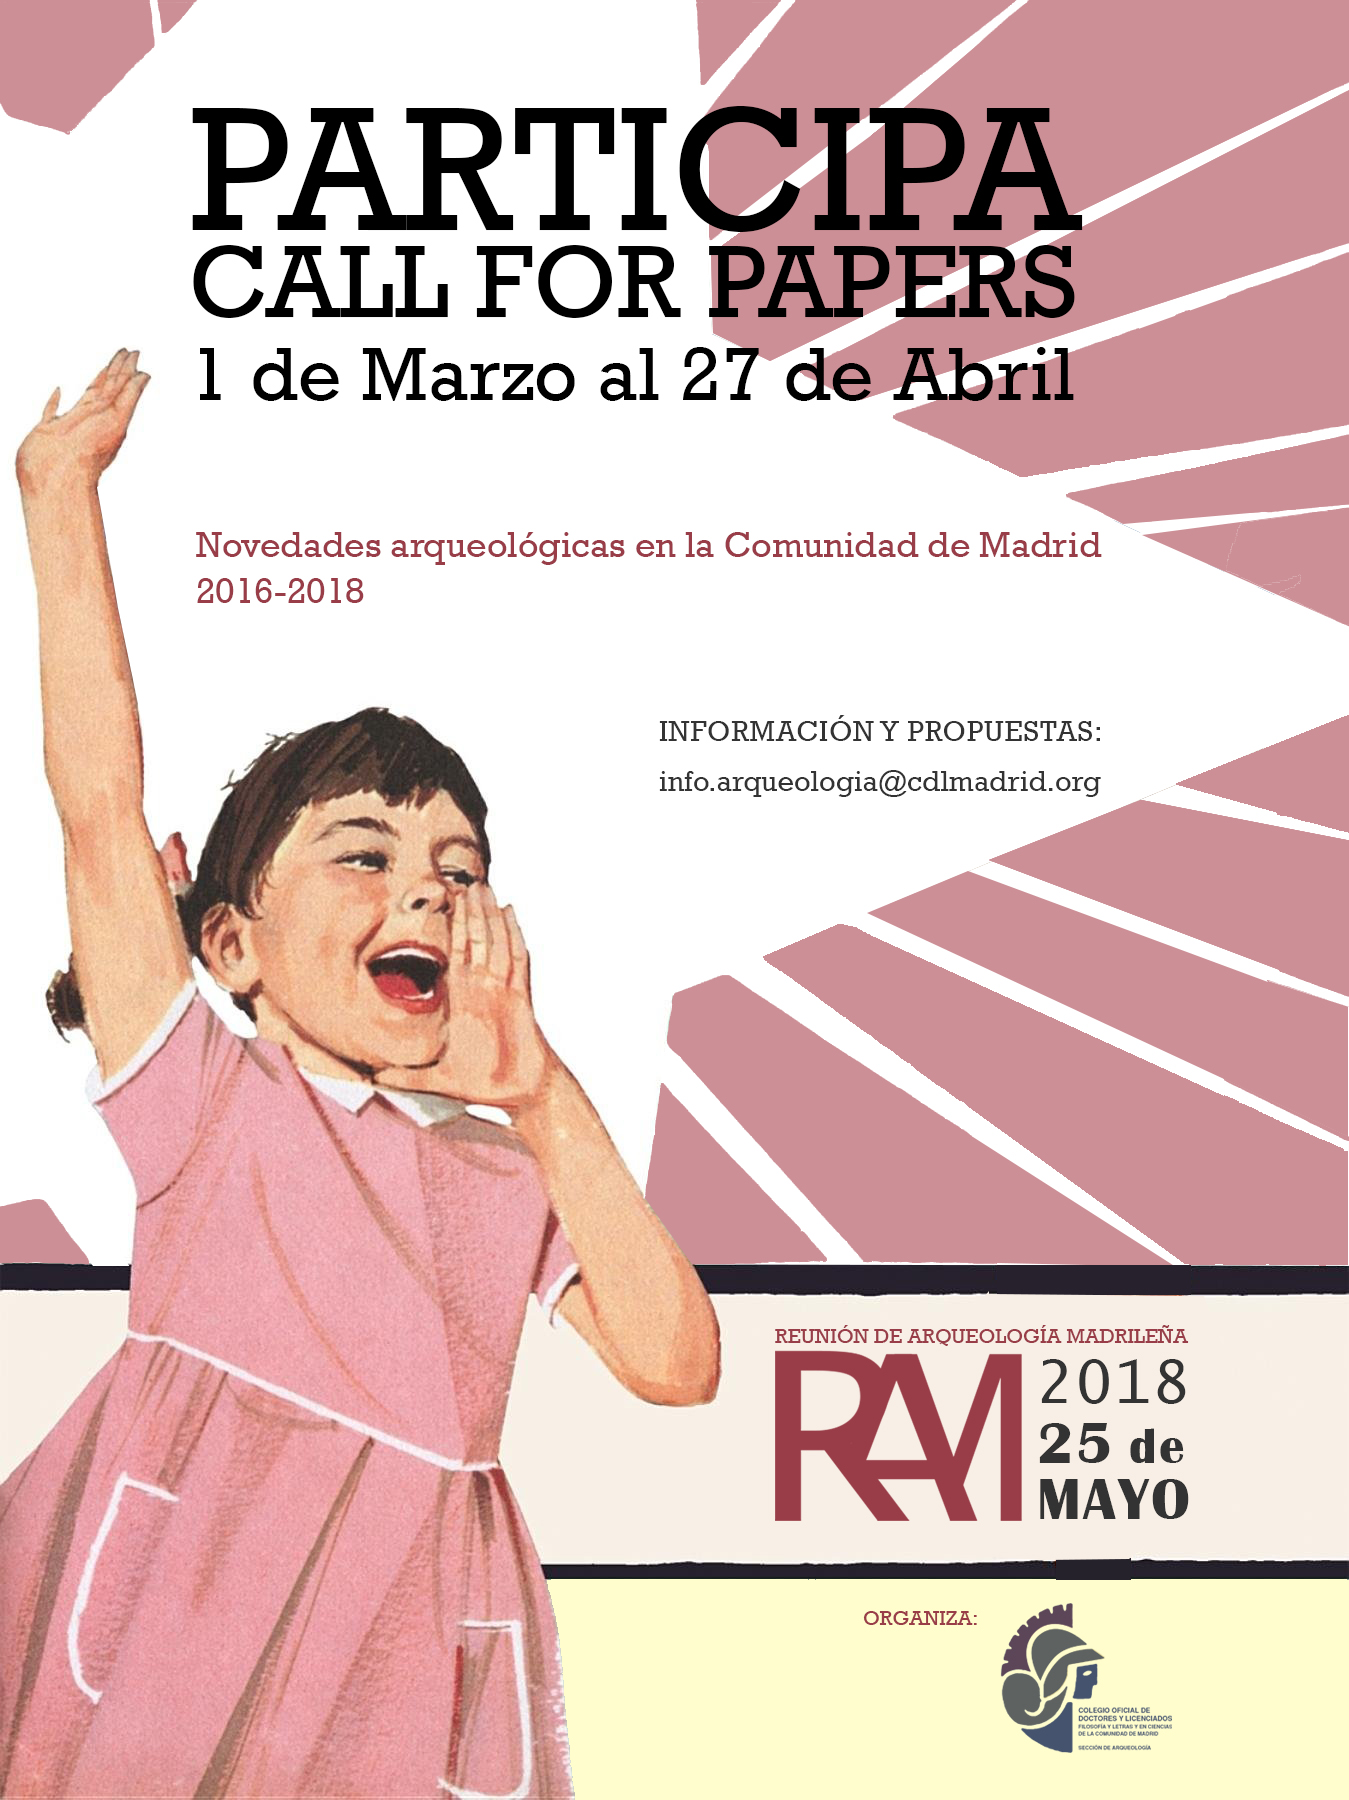 Reunión de Arqueología Madrileña 2018 – Call for papers